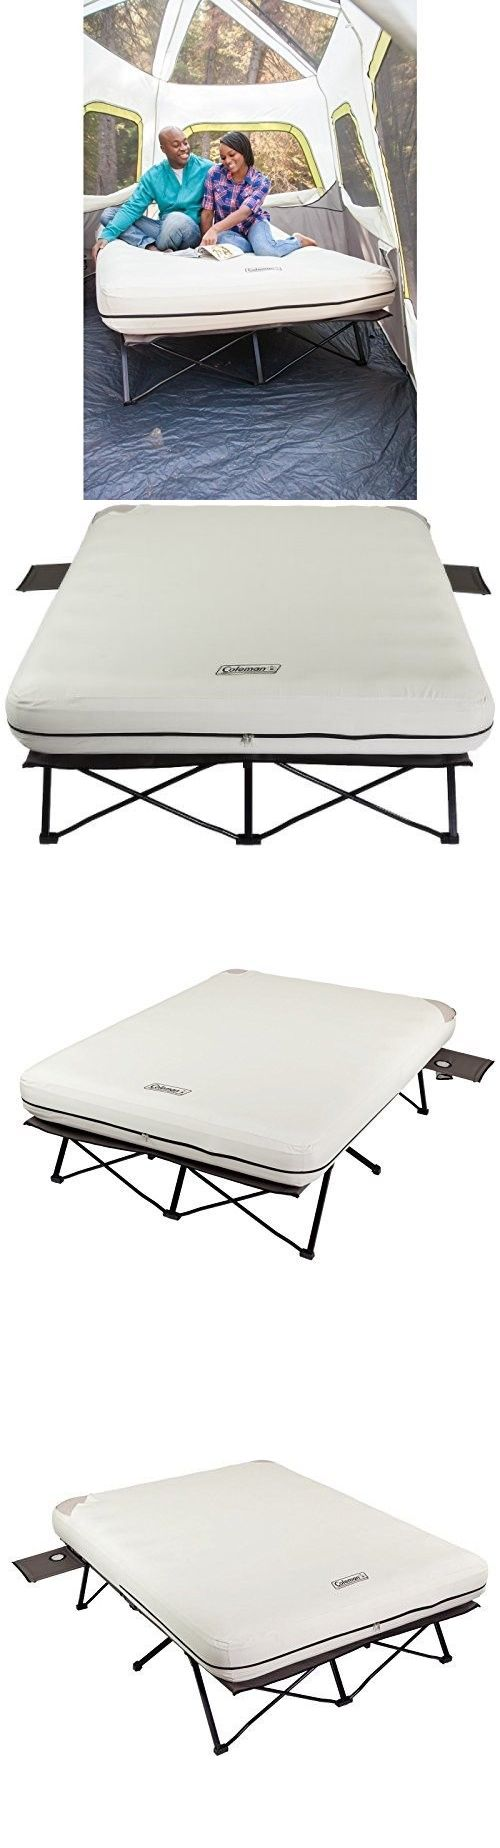 Mattresses and Pads 36114: Inflatable Camping Bed Queen Size Air Mattress  Steel Frame Cot Electric